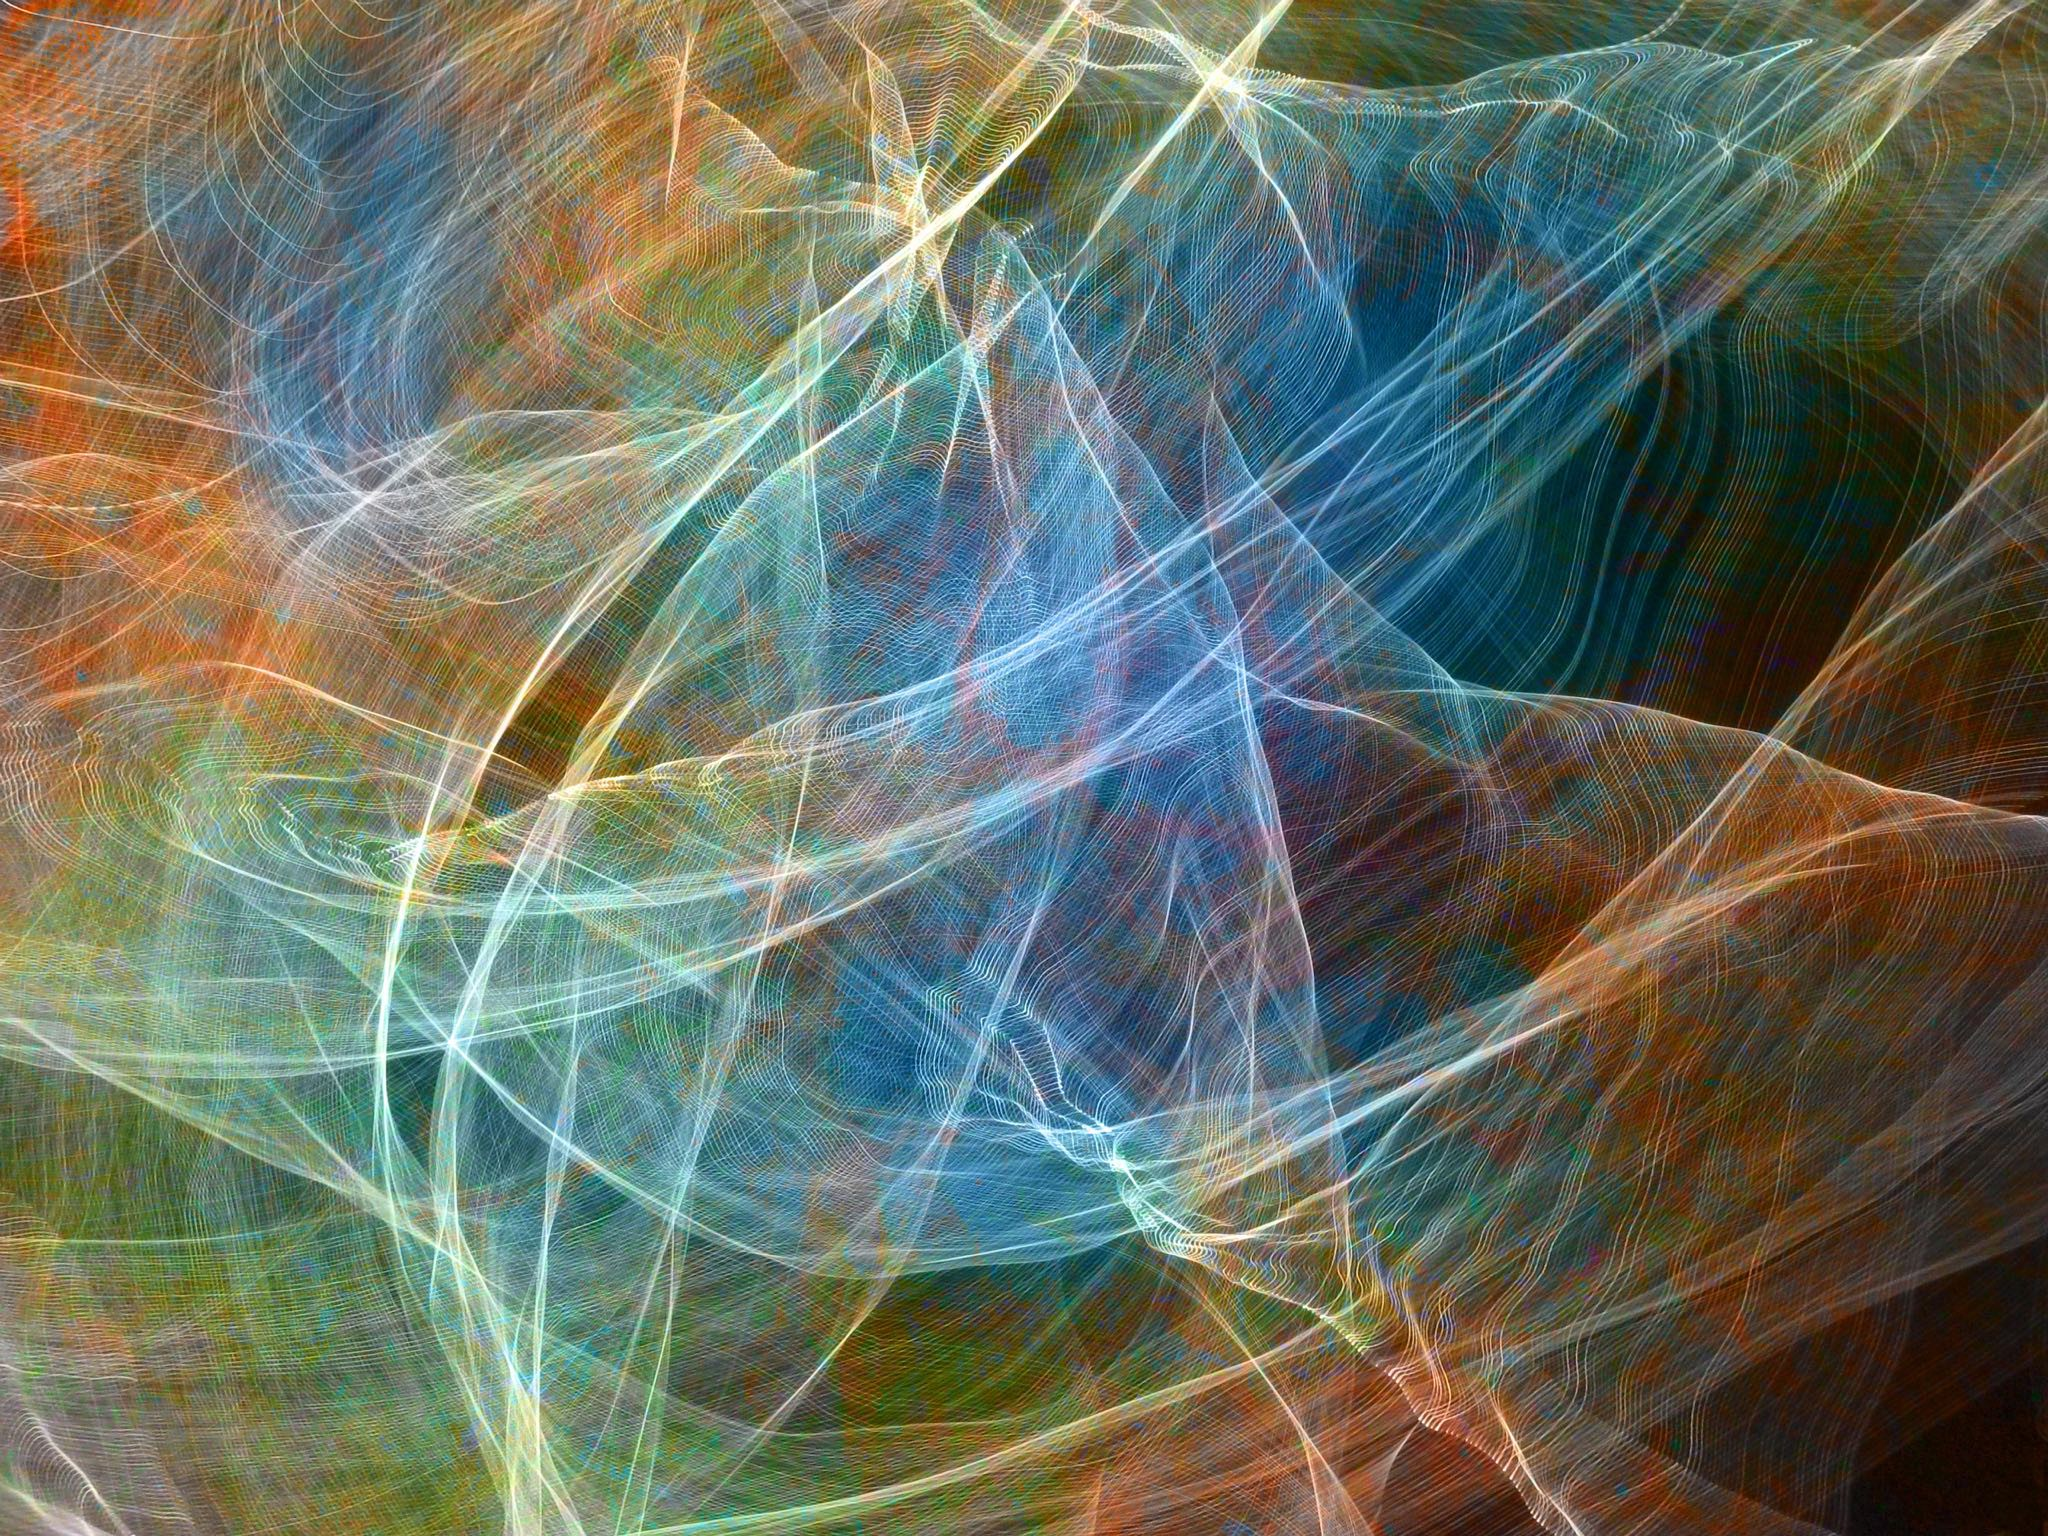 This abstract photograph shows swirls of floating colored light that look like translucent fabric or a distant nebula.